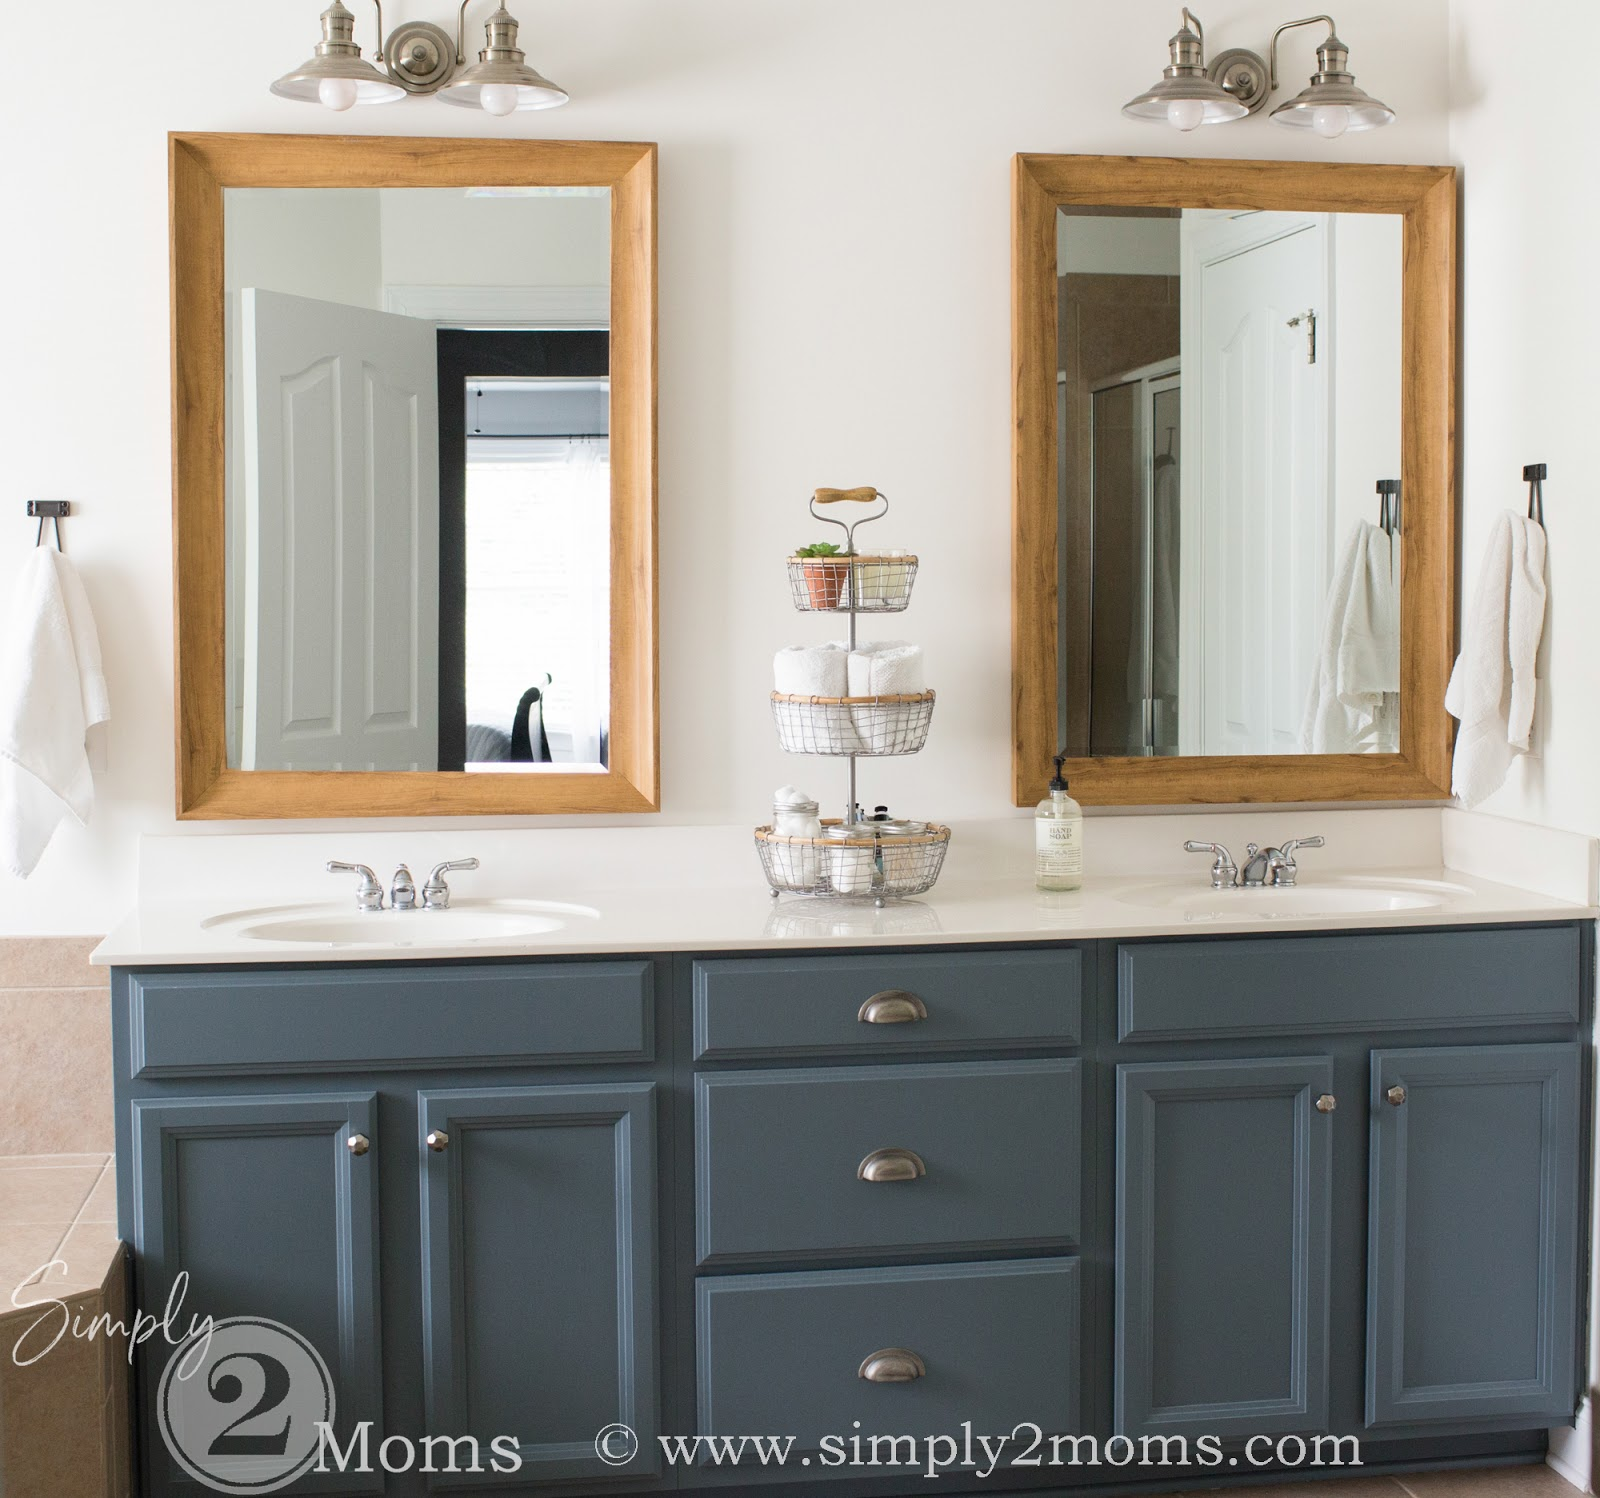 Stunning DIYs And Room Makeovers -- Link Up Yours! From